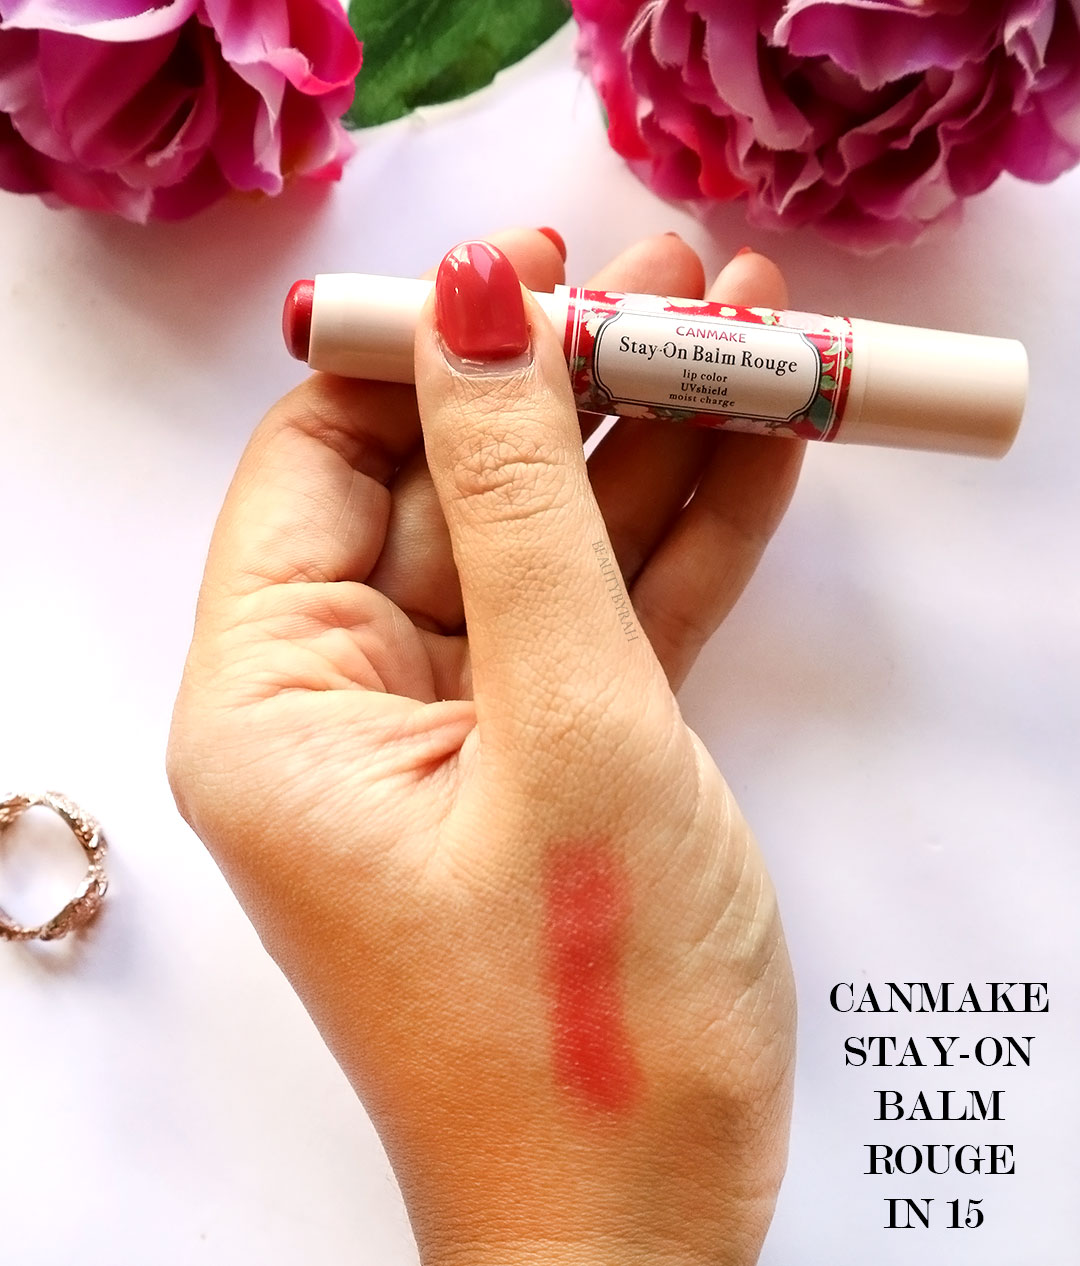 Canmake Stay On Balm Rouge in 15 review and swatches